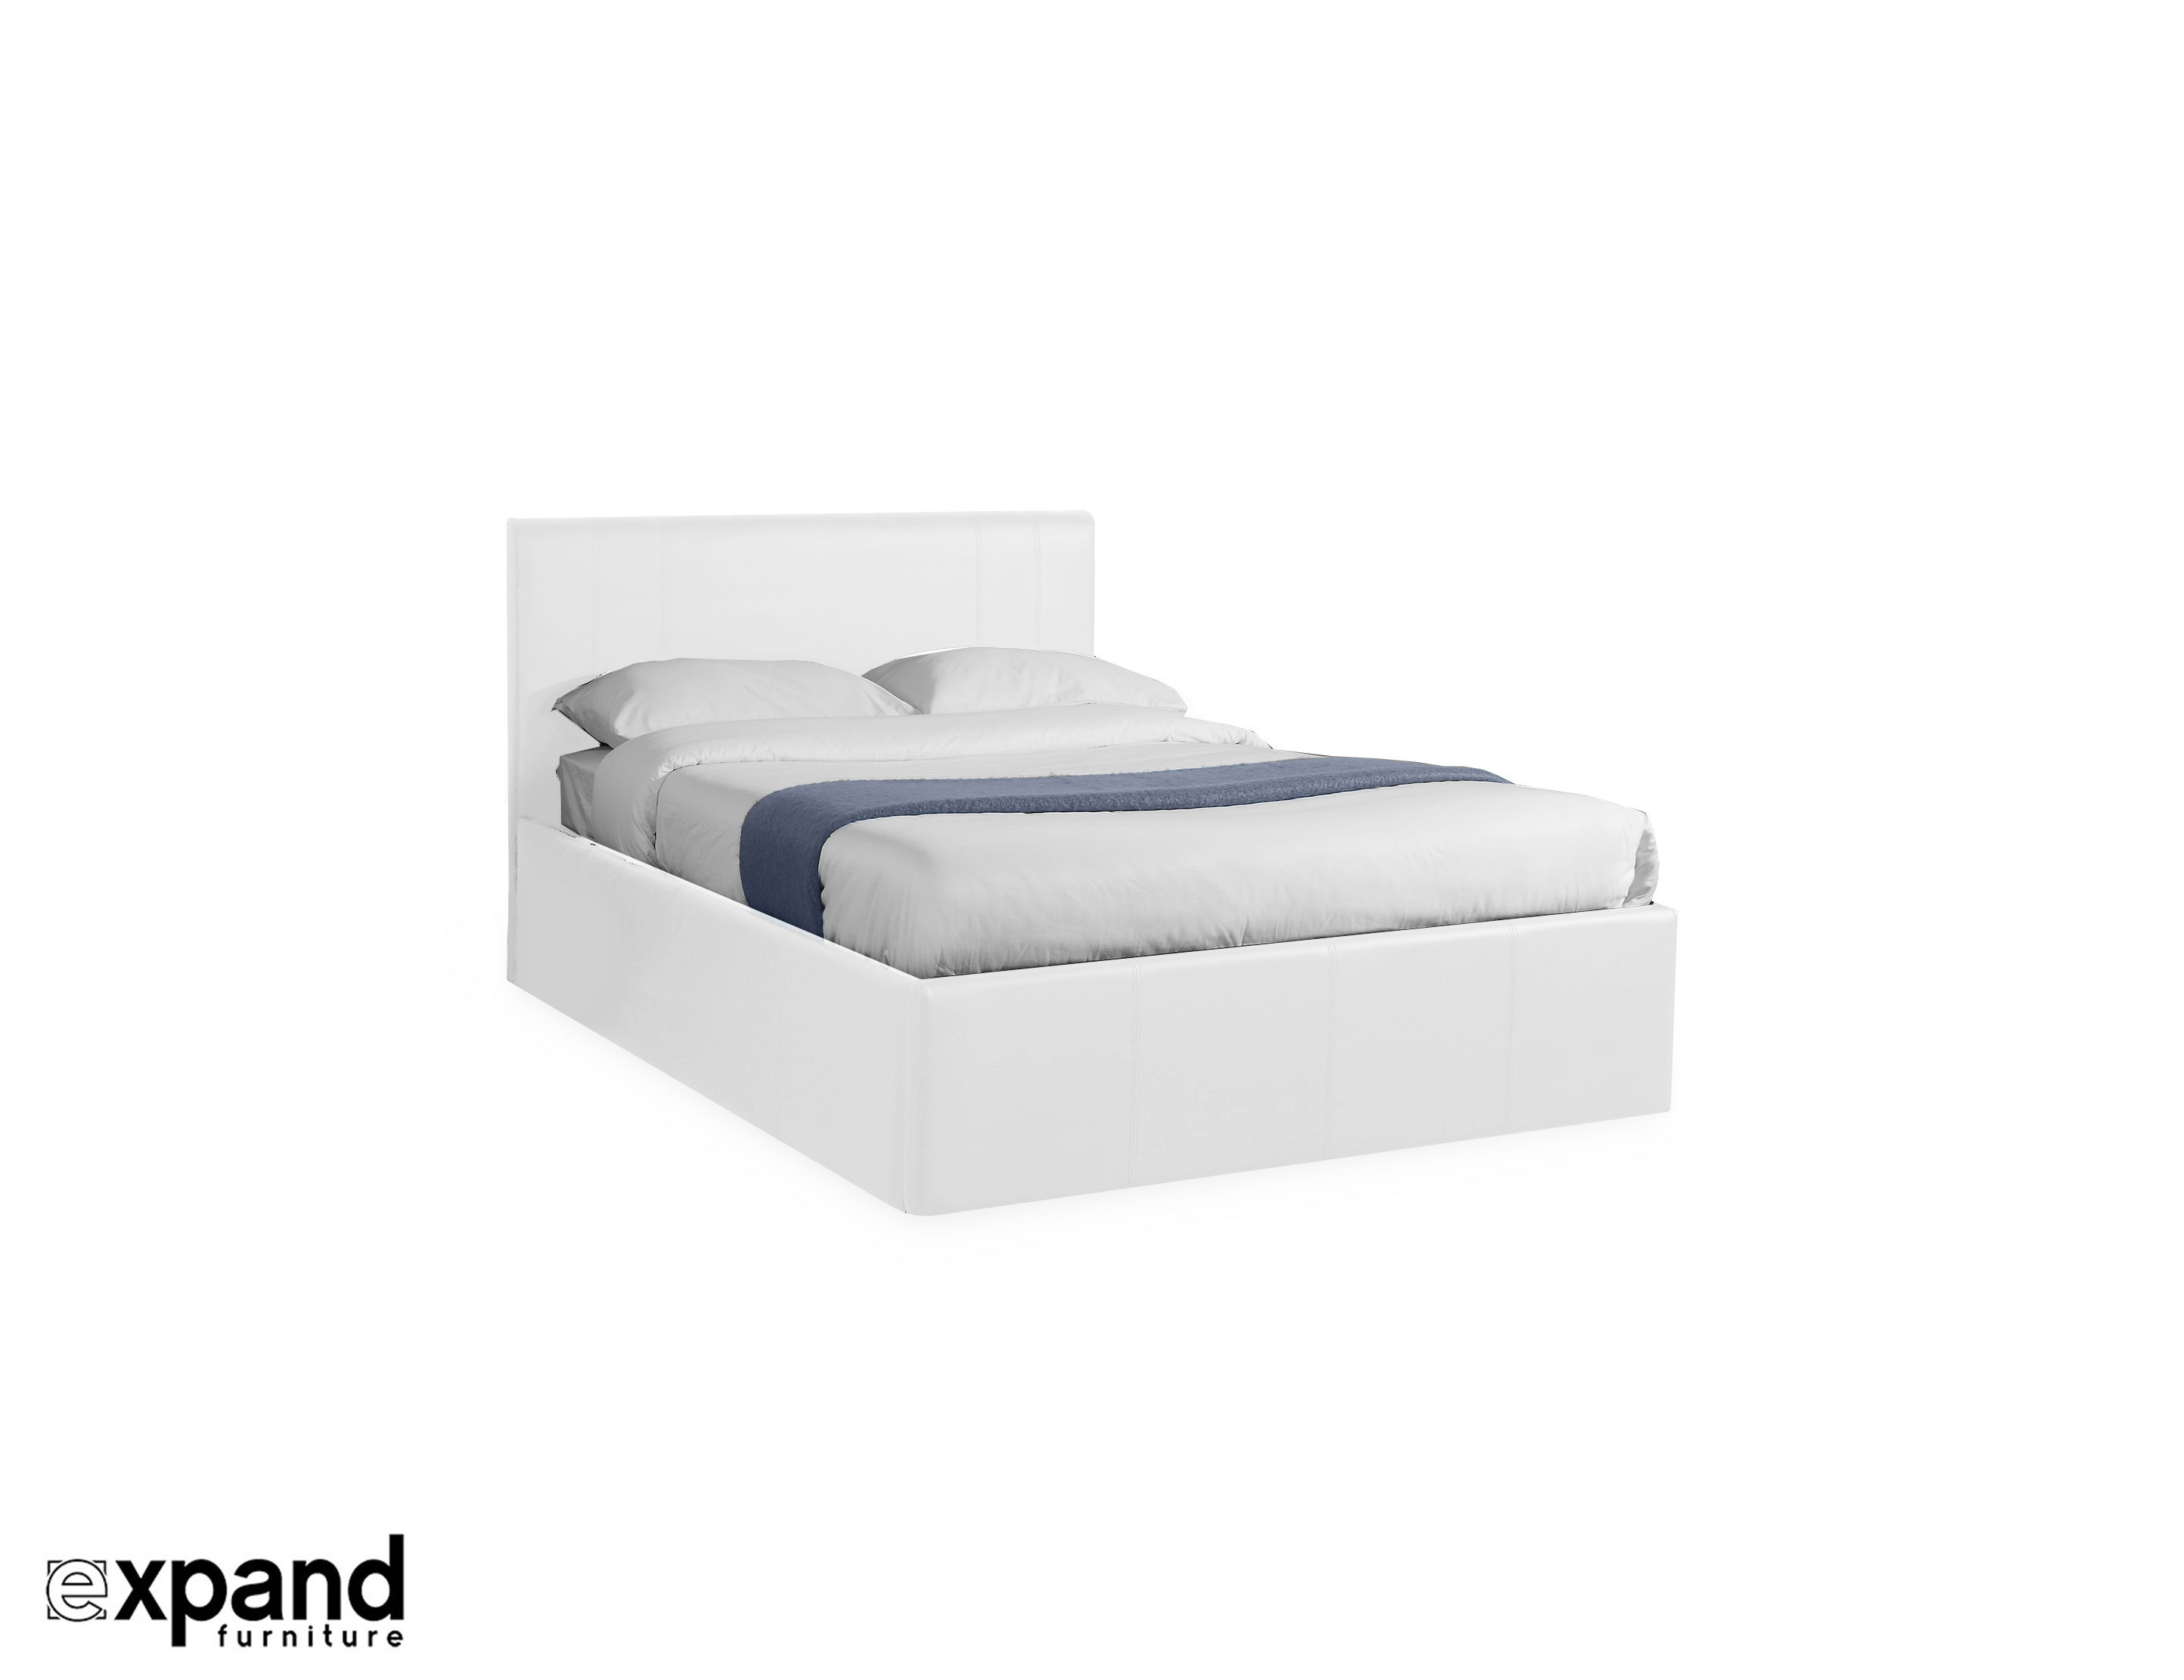 Size Of Queen Bed Reveal Queen Side Lifting Storage Bed